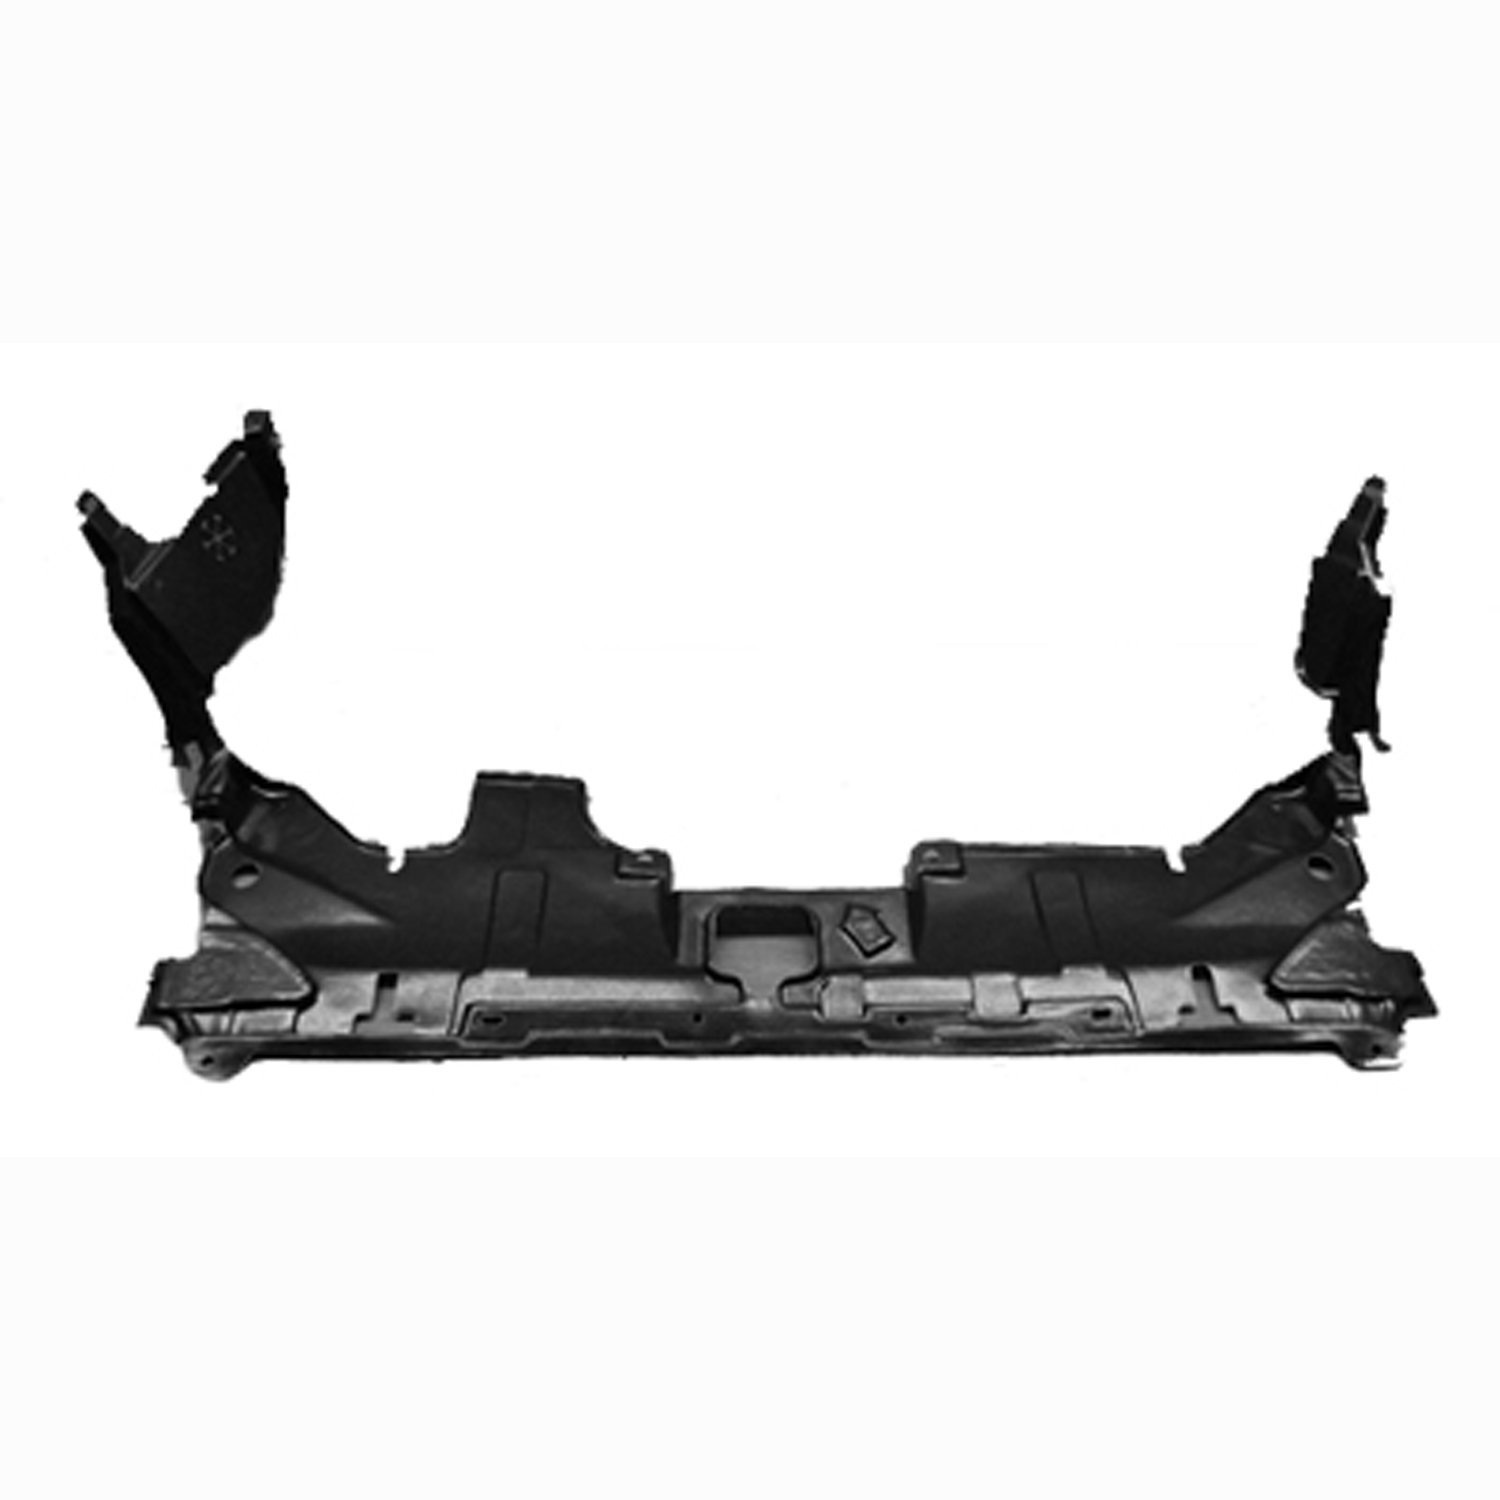 New Front Engine Splash Shield For Acura Acura TL 2009-2014 AC1228110